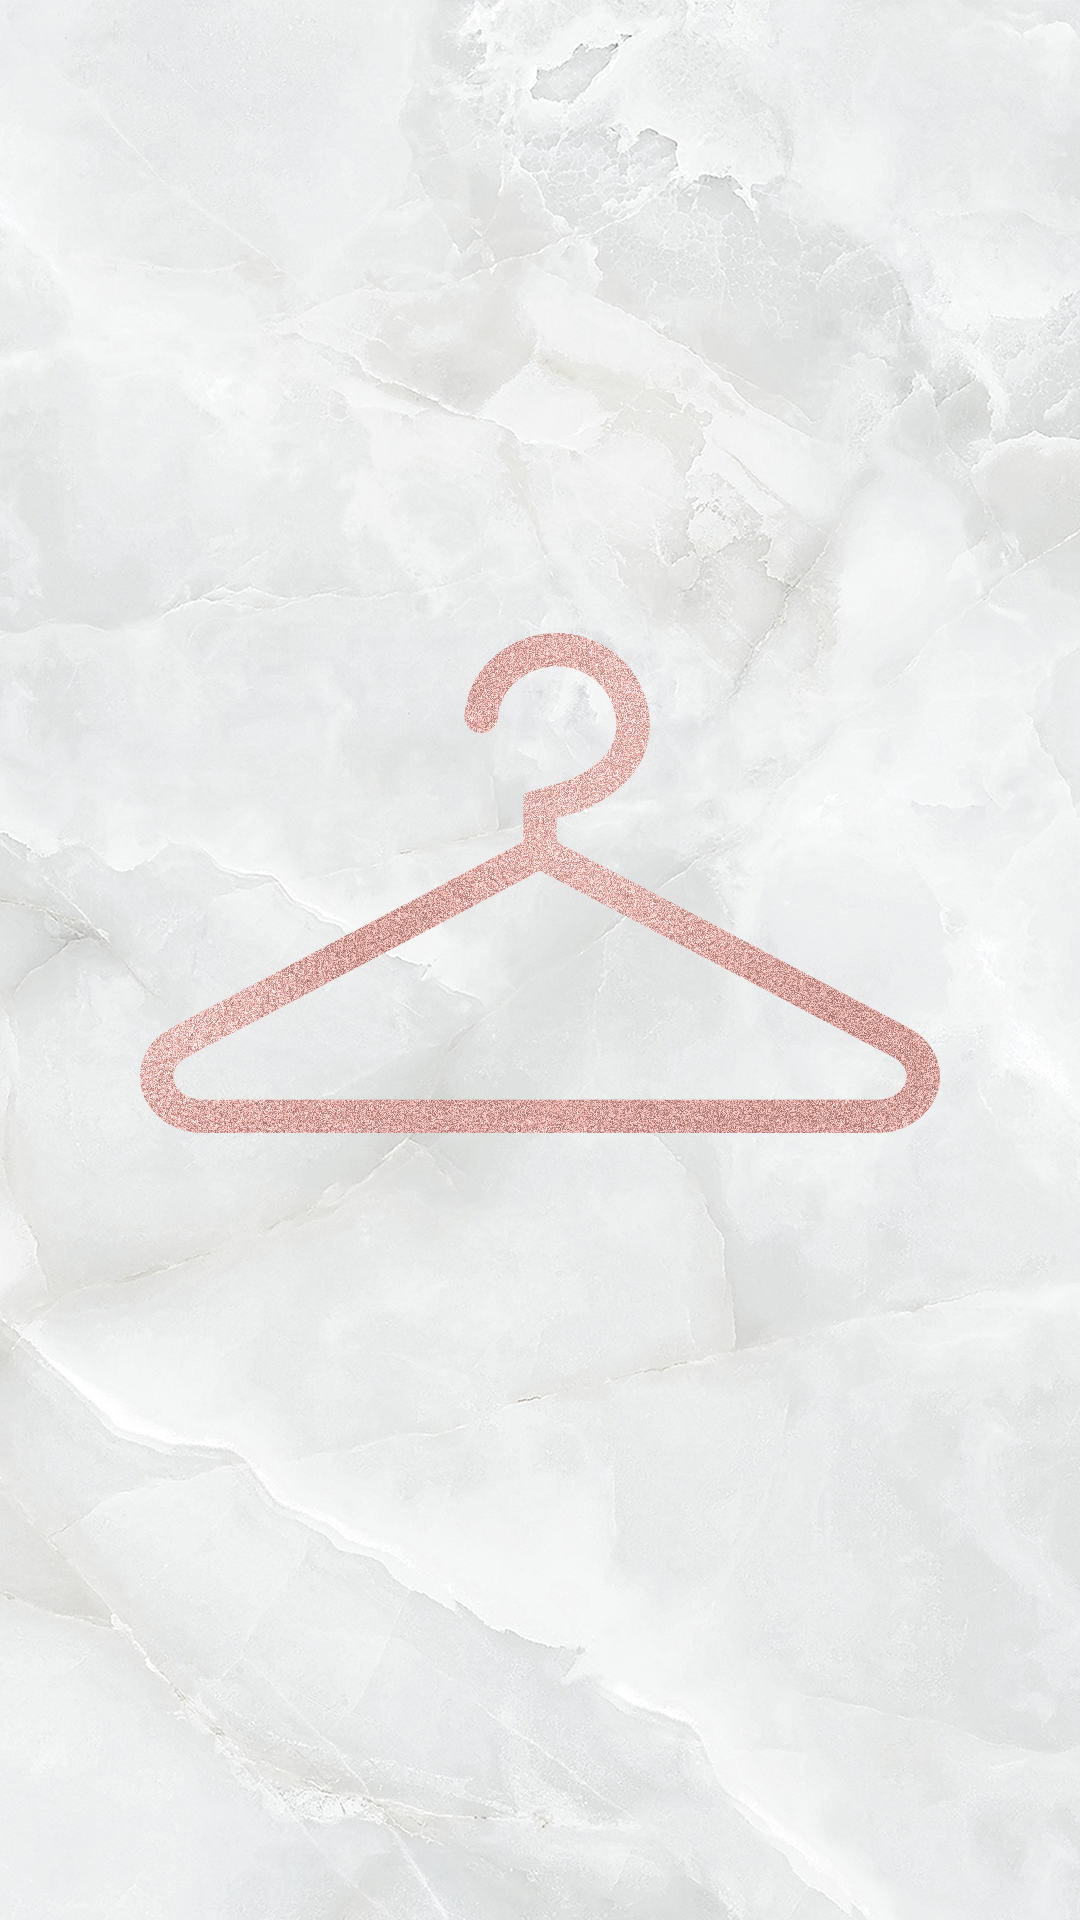 Rose Gold And Marble Elegant Instagram Story Highlight Covers Business Insta Icons Feminine E Commerce Bra Logotipo Instagram Ideias Instagram Cinza E Rosa